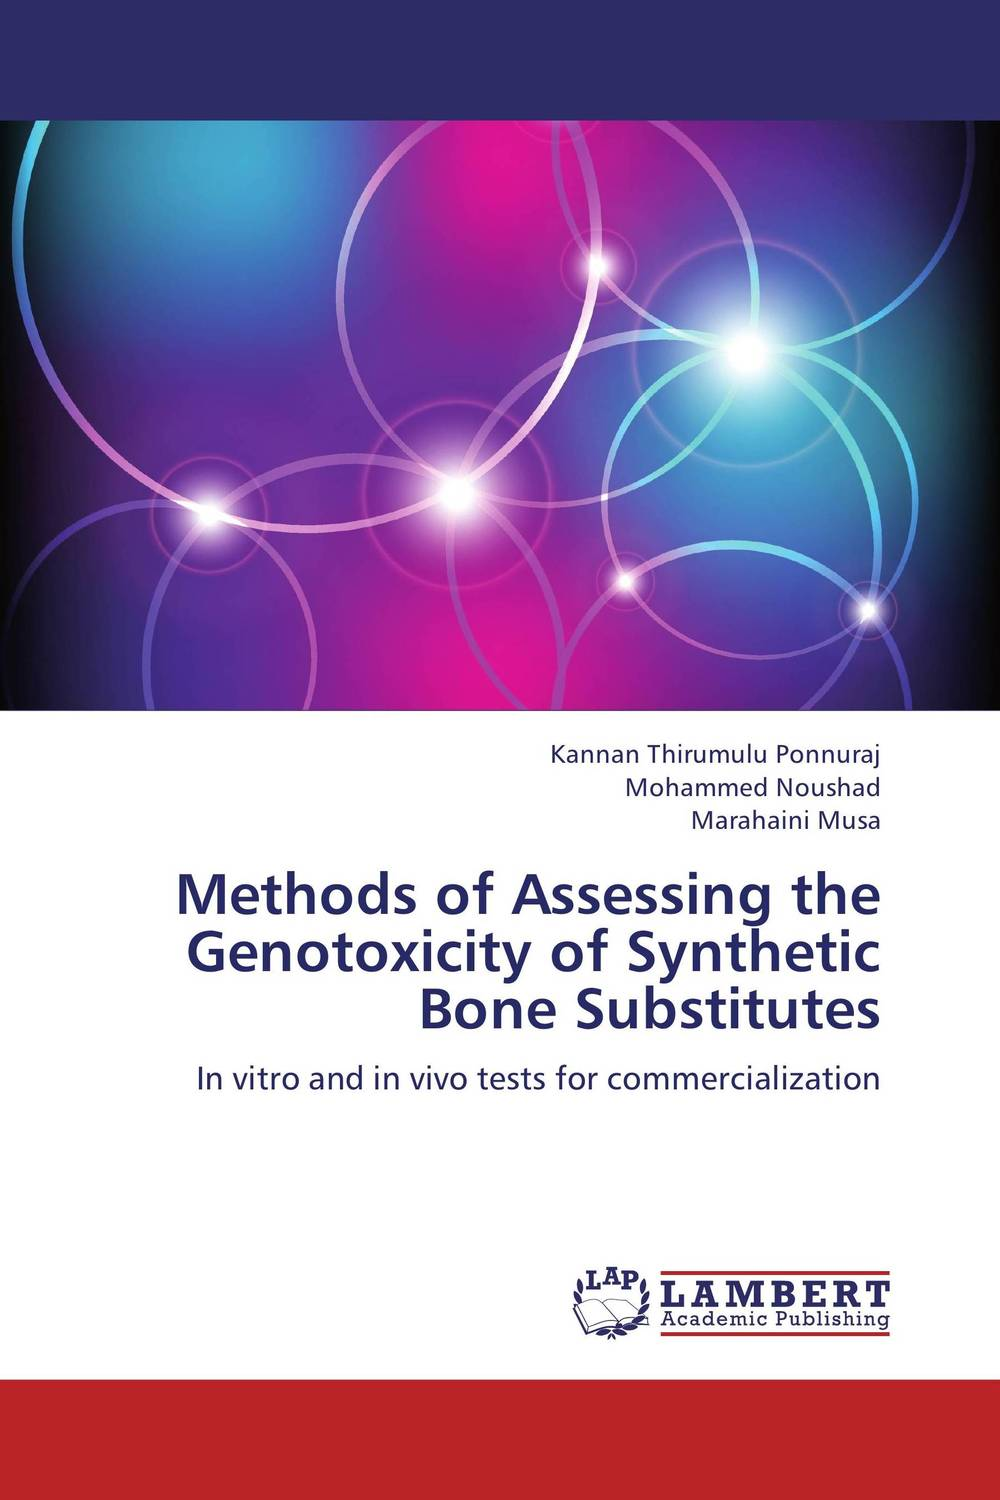 Methods of Assessing the Genotoxicity of Synthetic Bone Substitutes natural substitutes for synthetic methionine